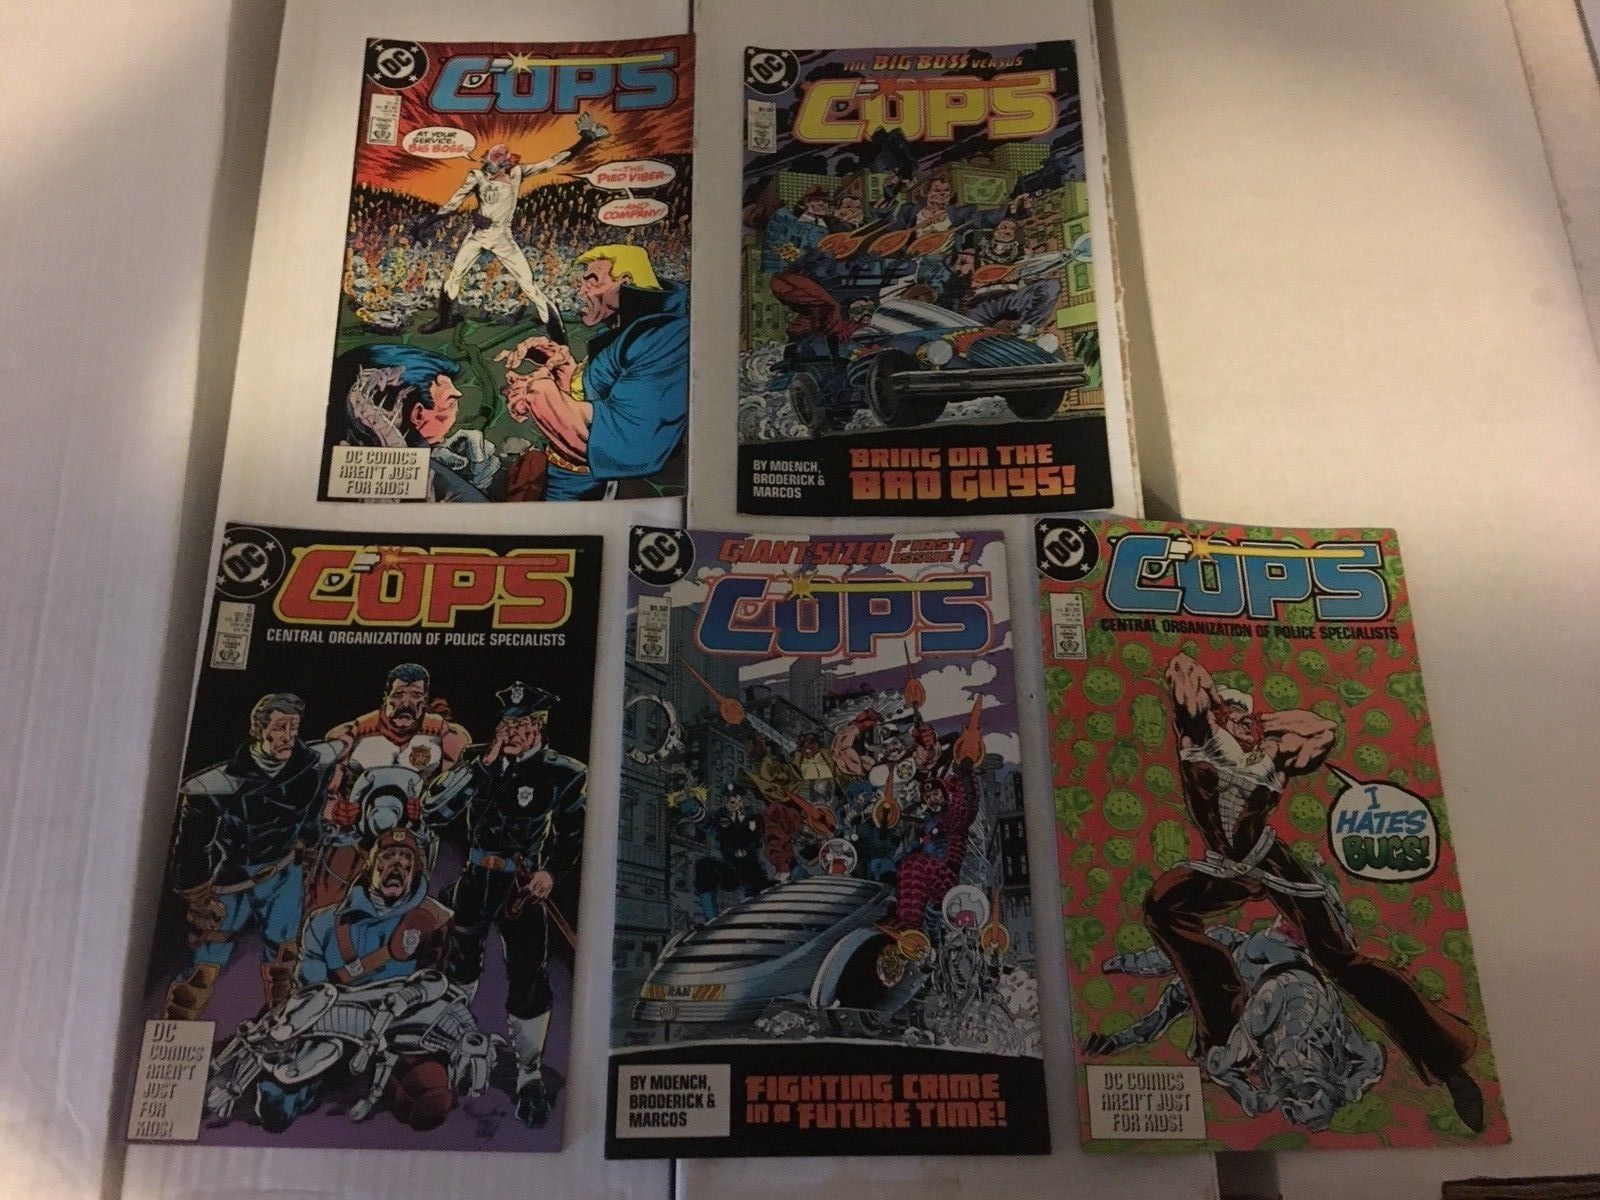 COPS #1 - 5 DC Book Lot / Run Of 5 1988 VF - VF+ Condition Central Orginization